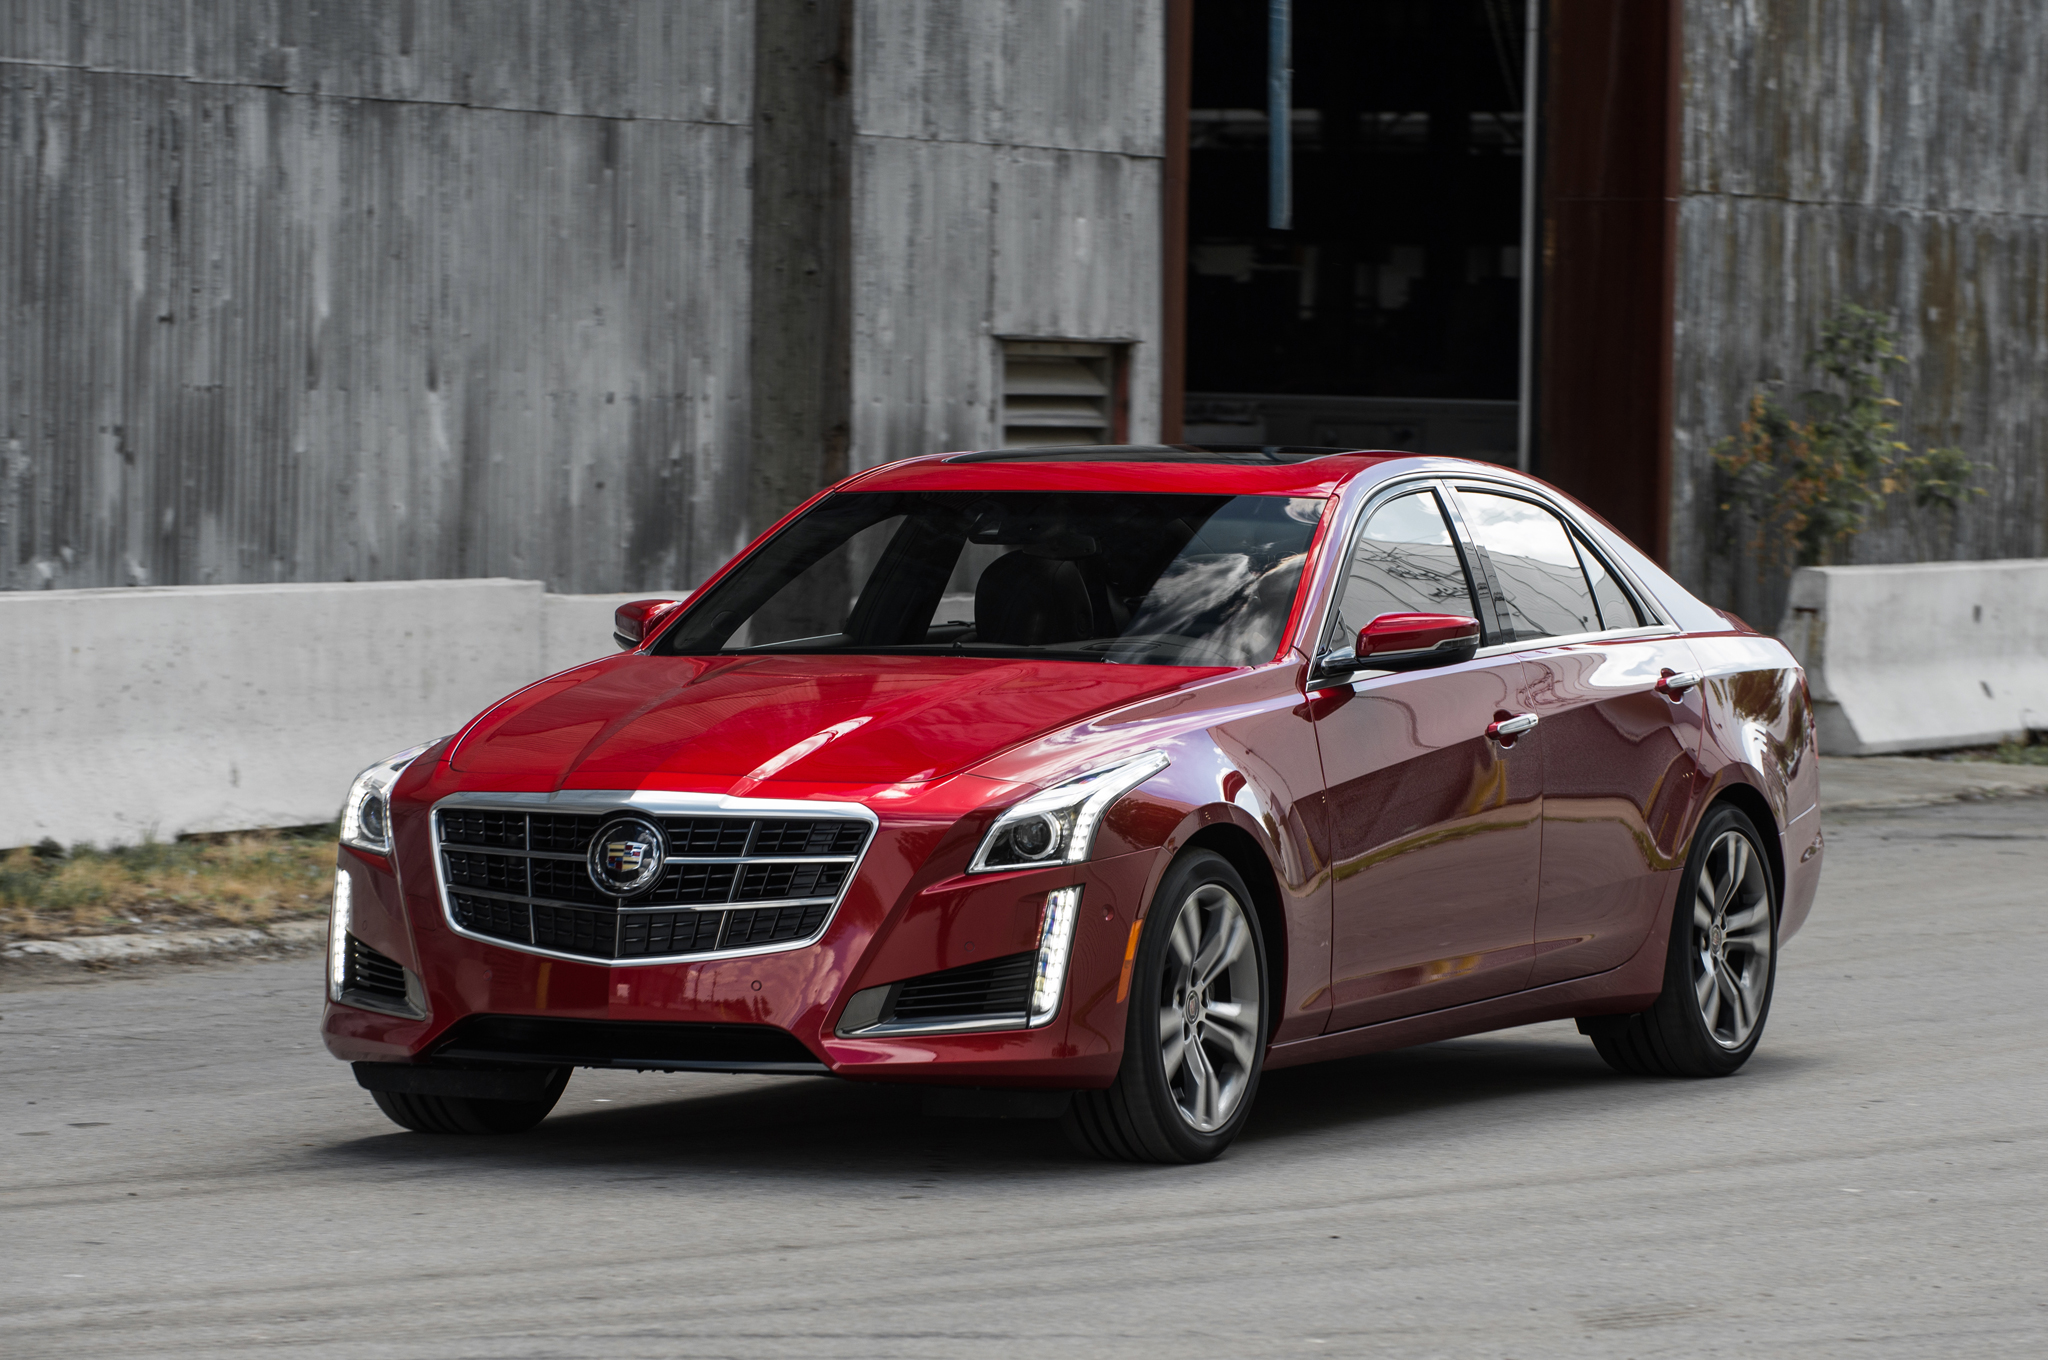 2014 Cadillac Cts Vsport Gets Tracked On Ignition W Video Motor